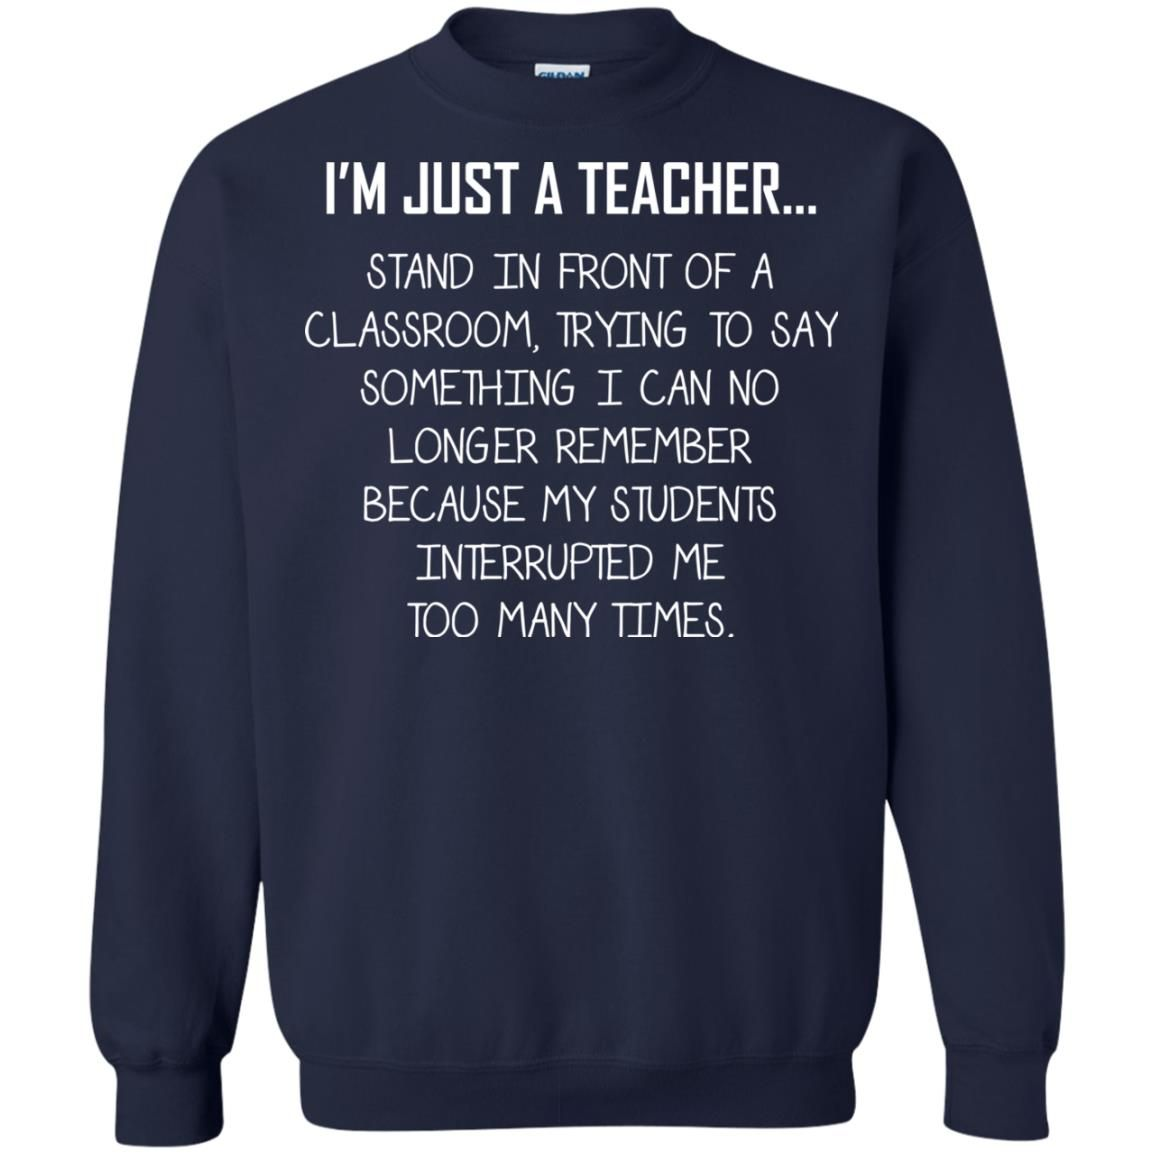 image 1332 - I'm just a teacher stand in front of a classroom shirt